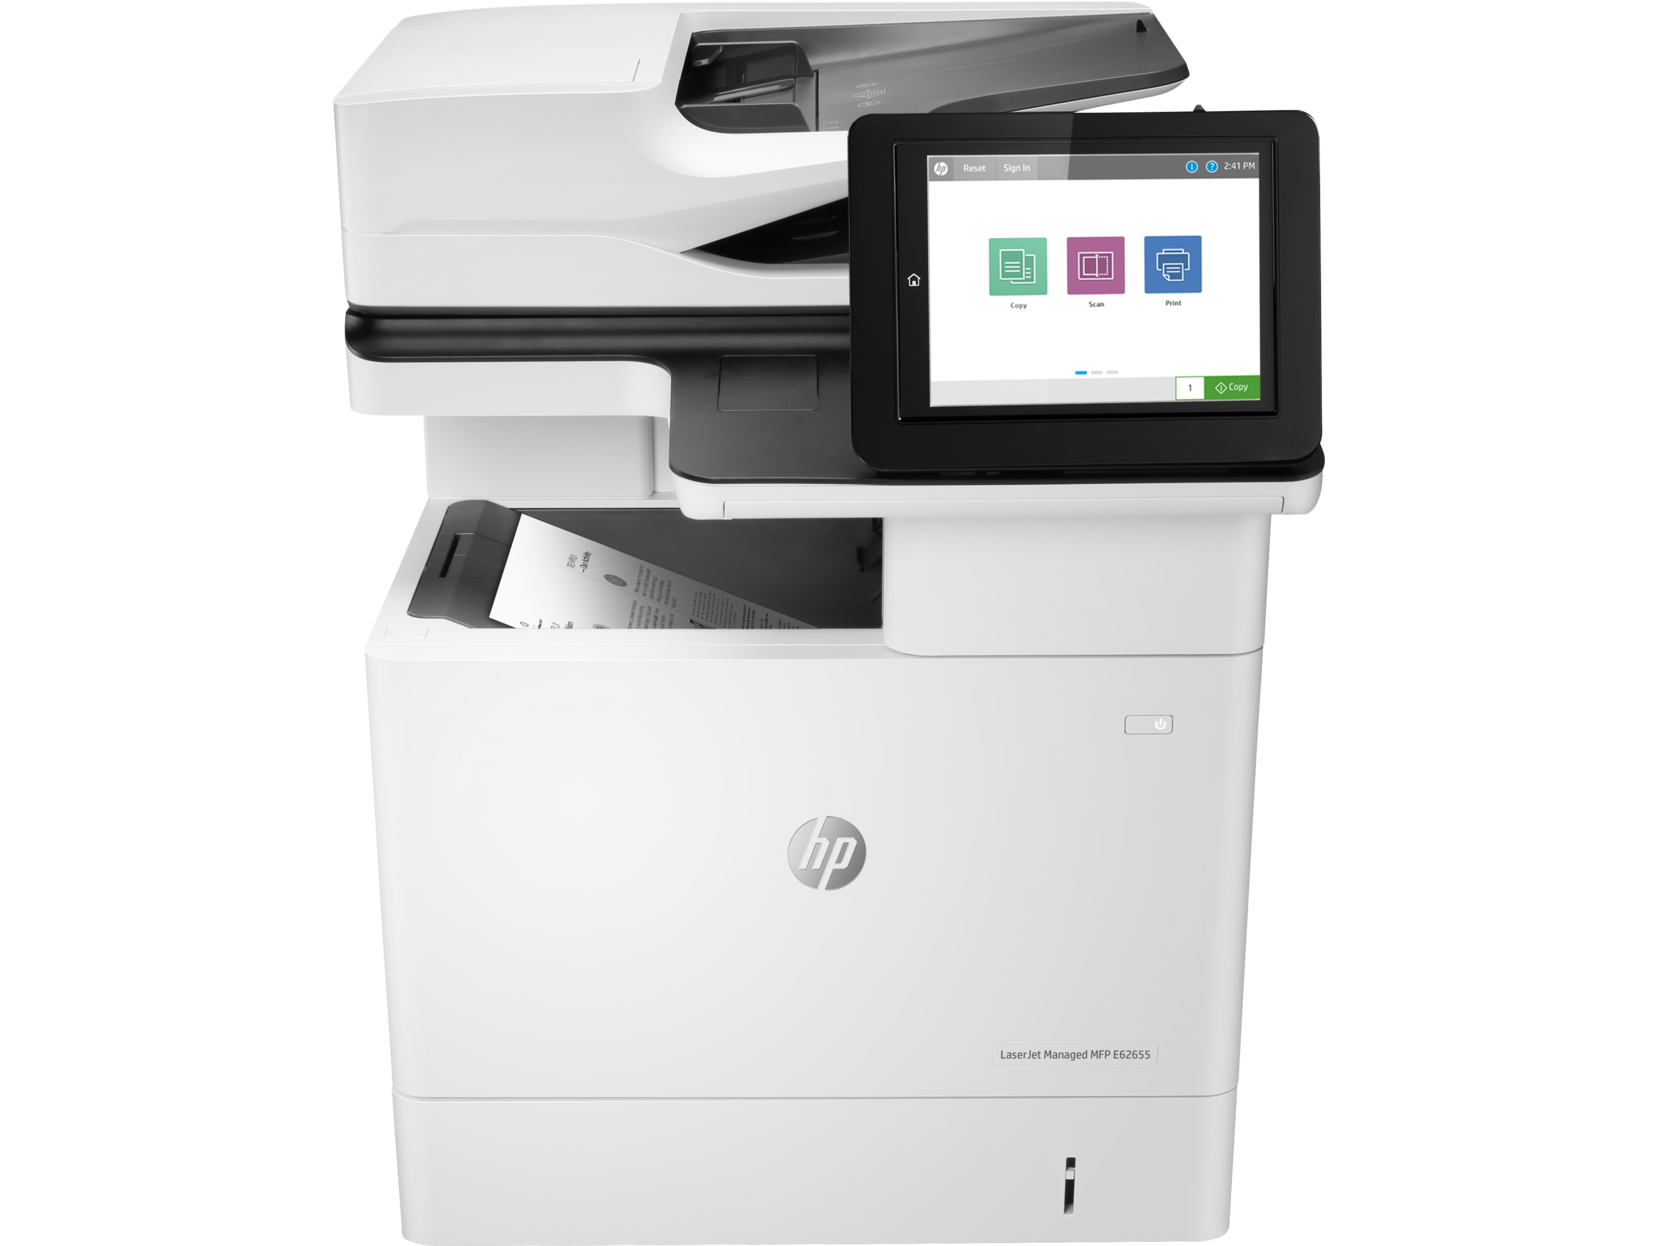 HP LaserJet Managed E62655dn (3GY14A)